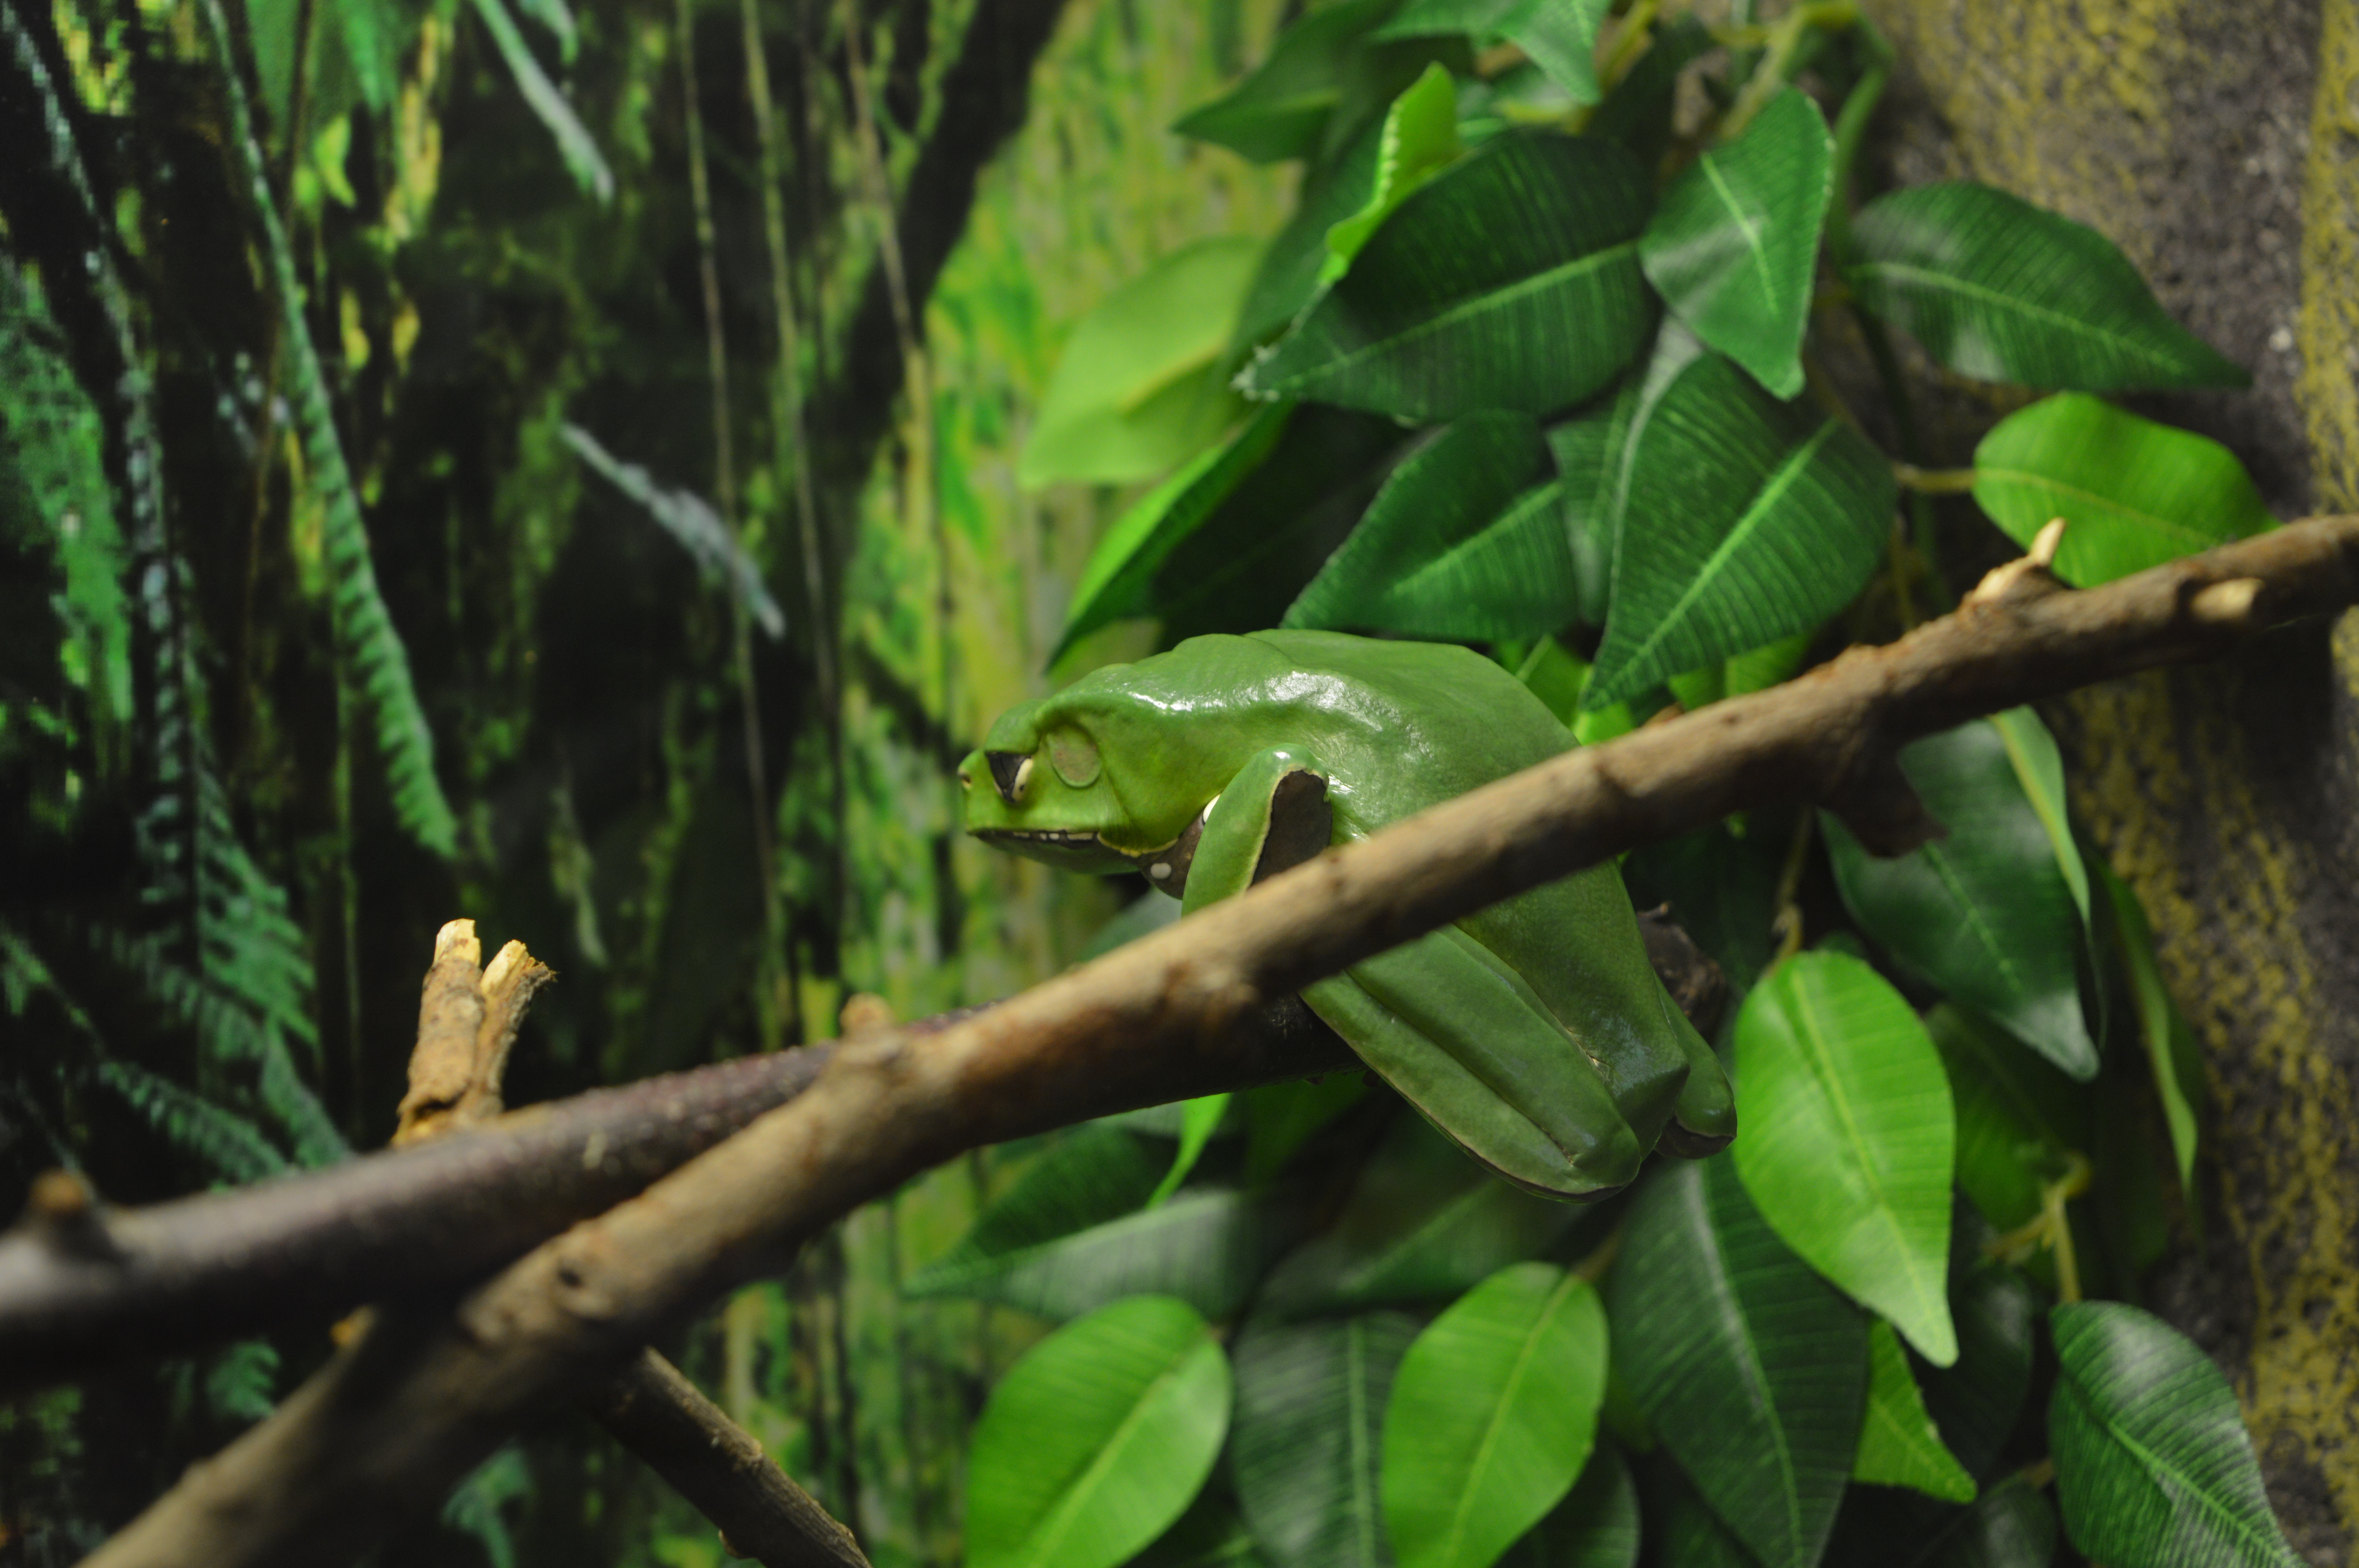 Tree Frog in Bug World at Alcorn's Tropical World, Donegal